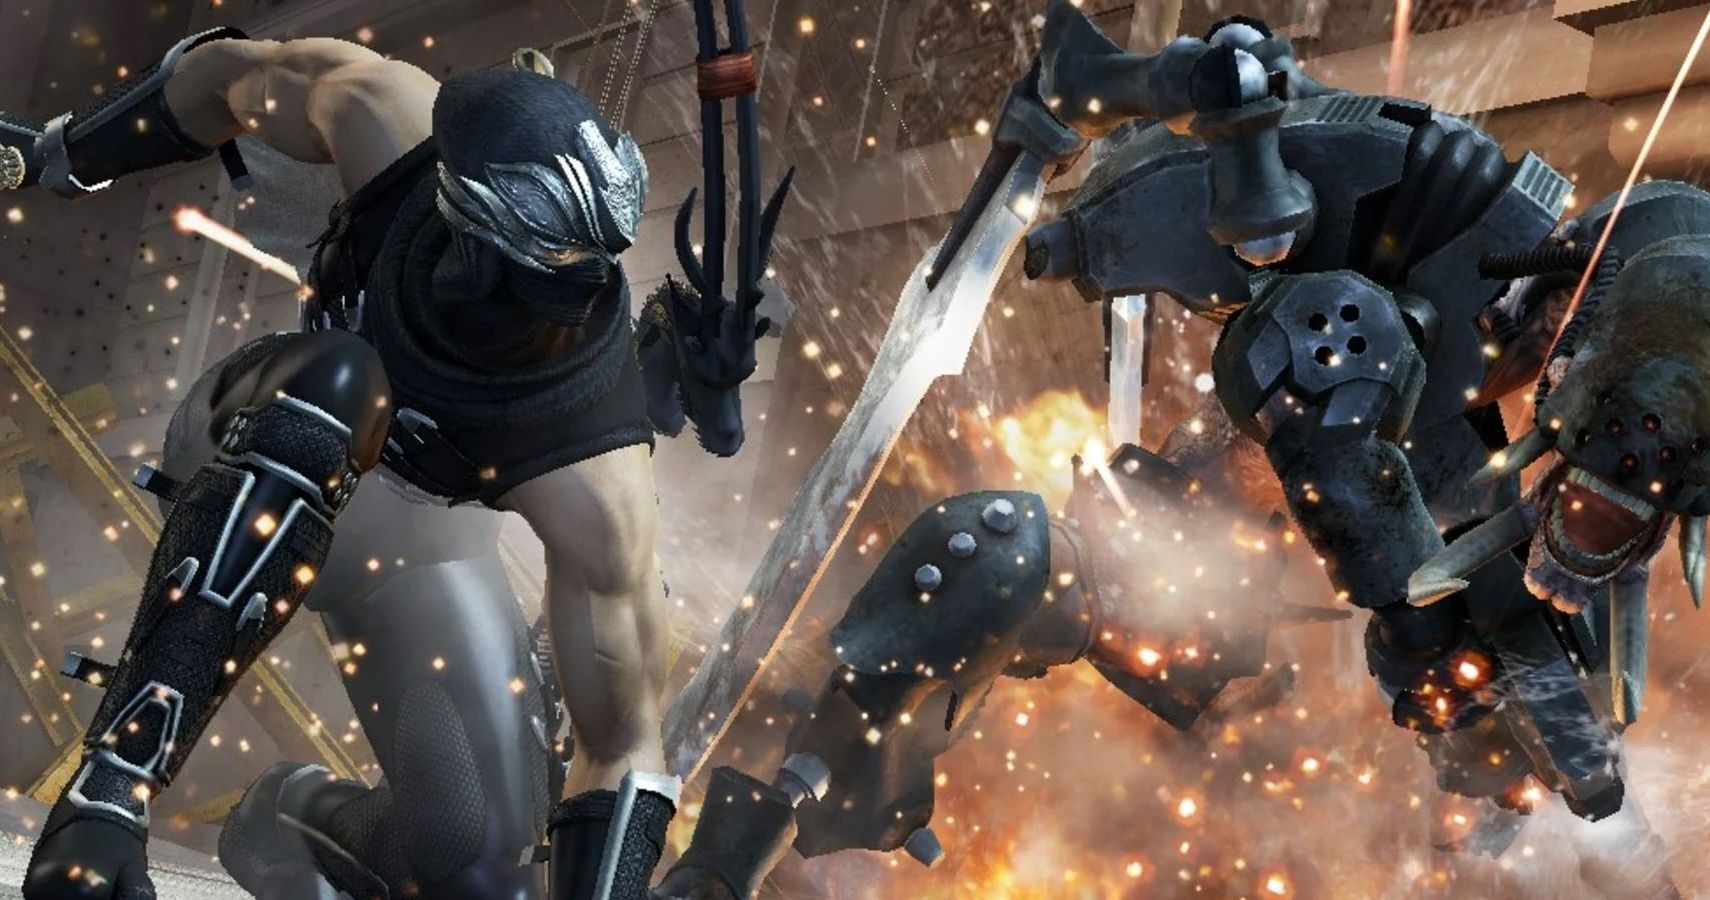 Ninja Gaiden Grasp Assortment's PC Port Receives Replace With Graphical Choices